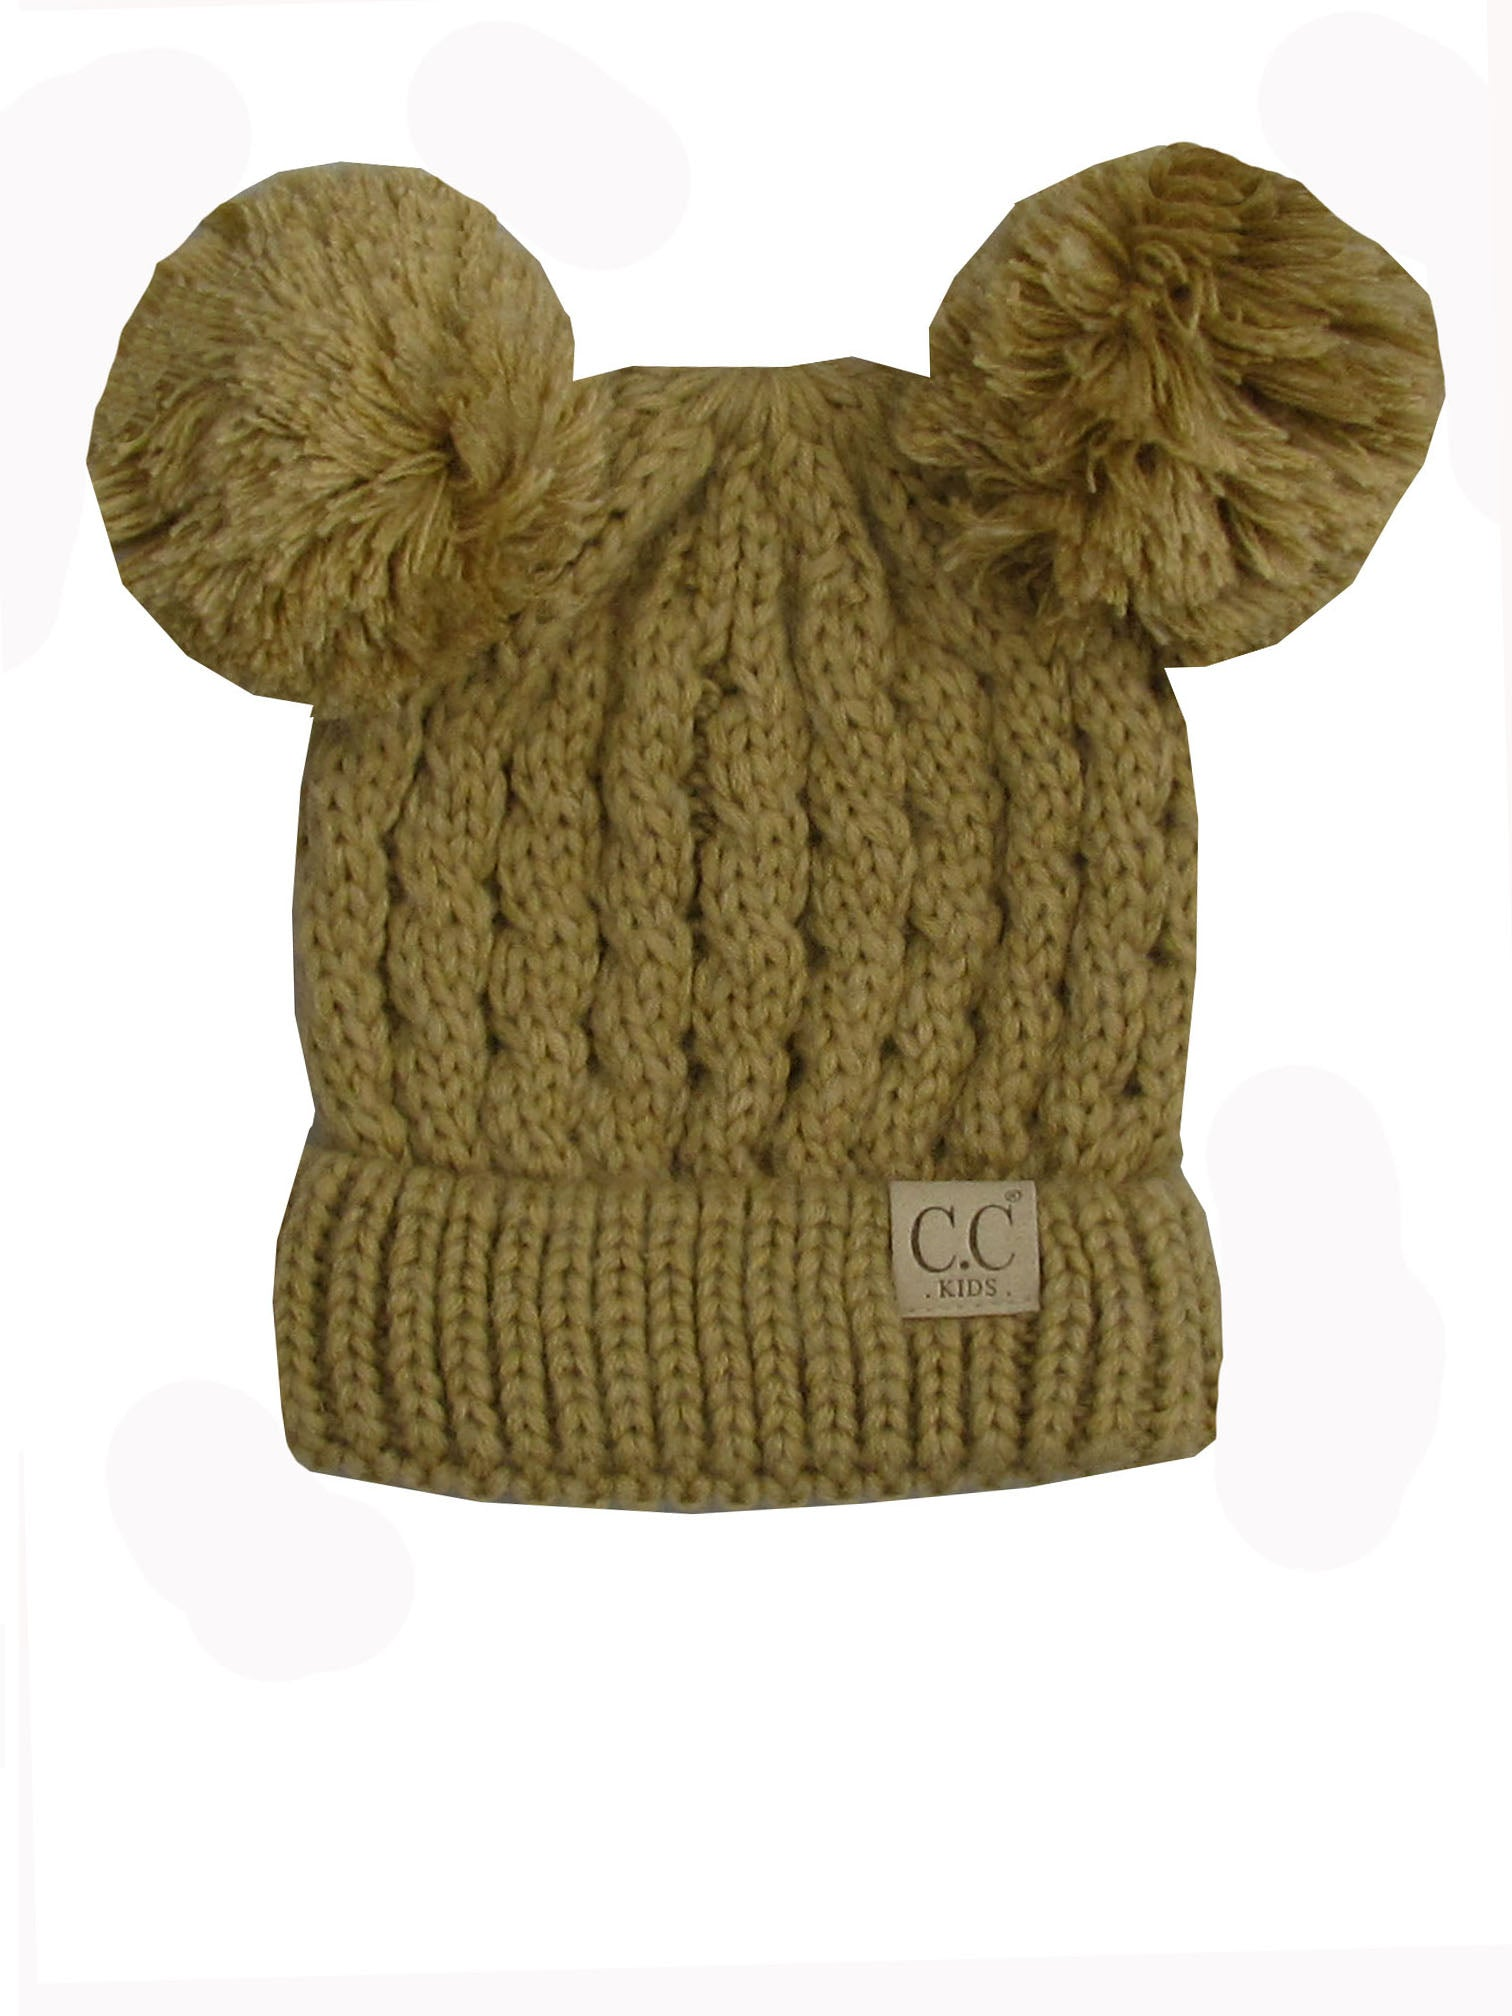 C.C Kid-24 Camel Youth Beanie